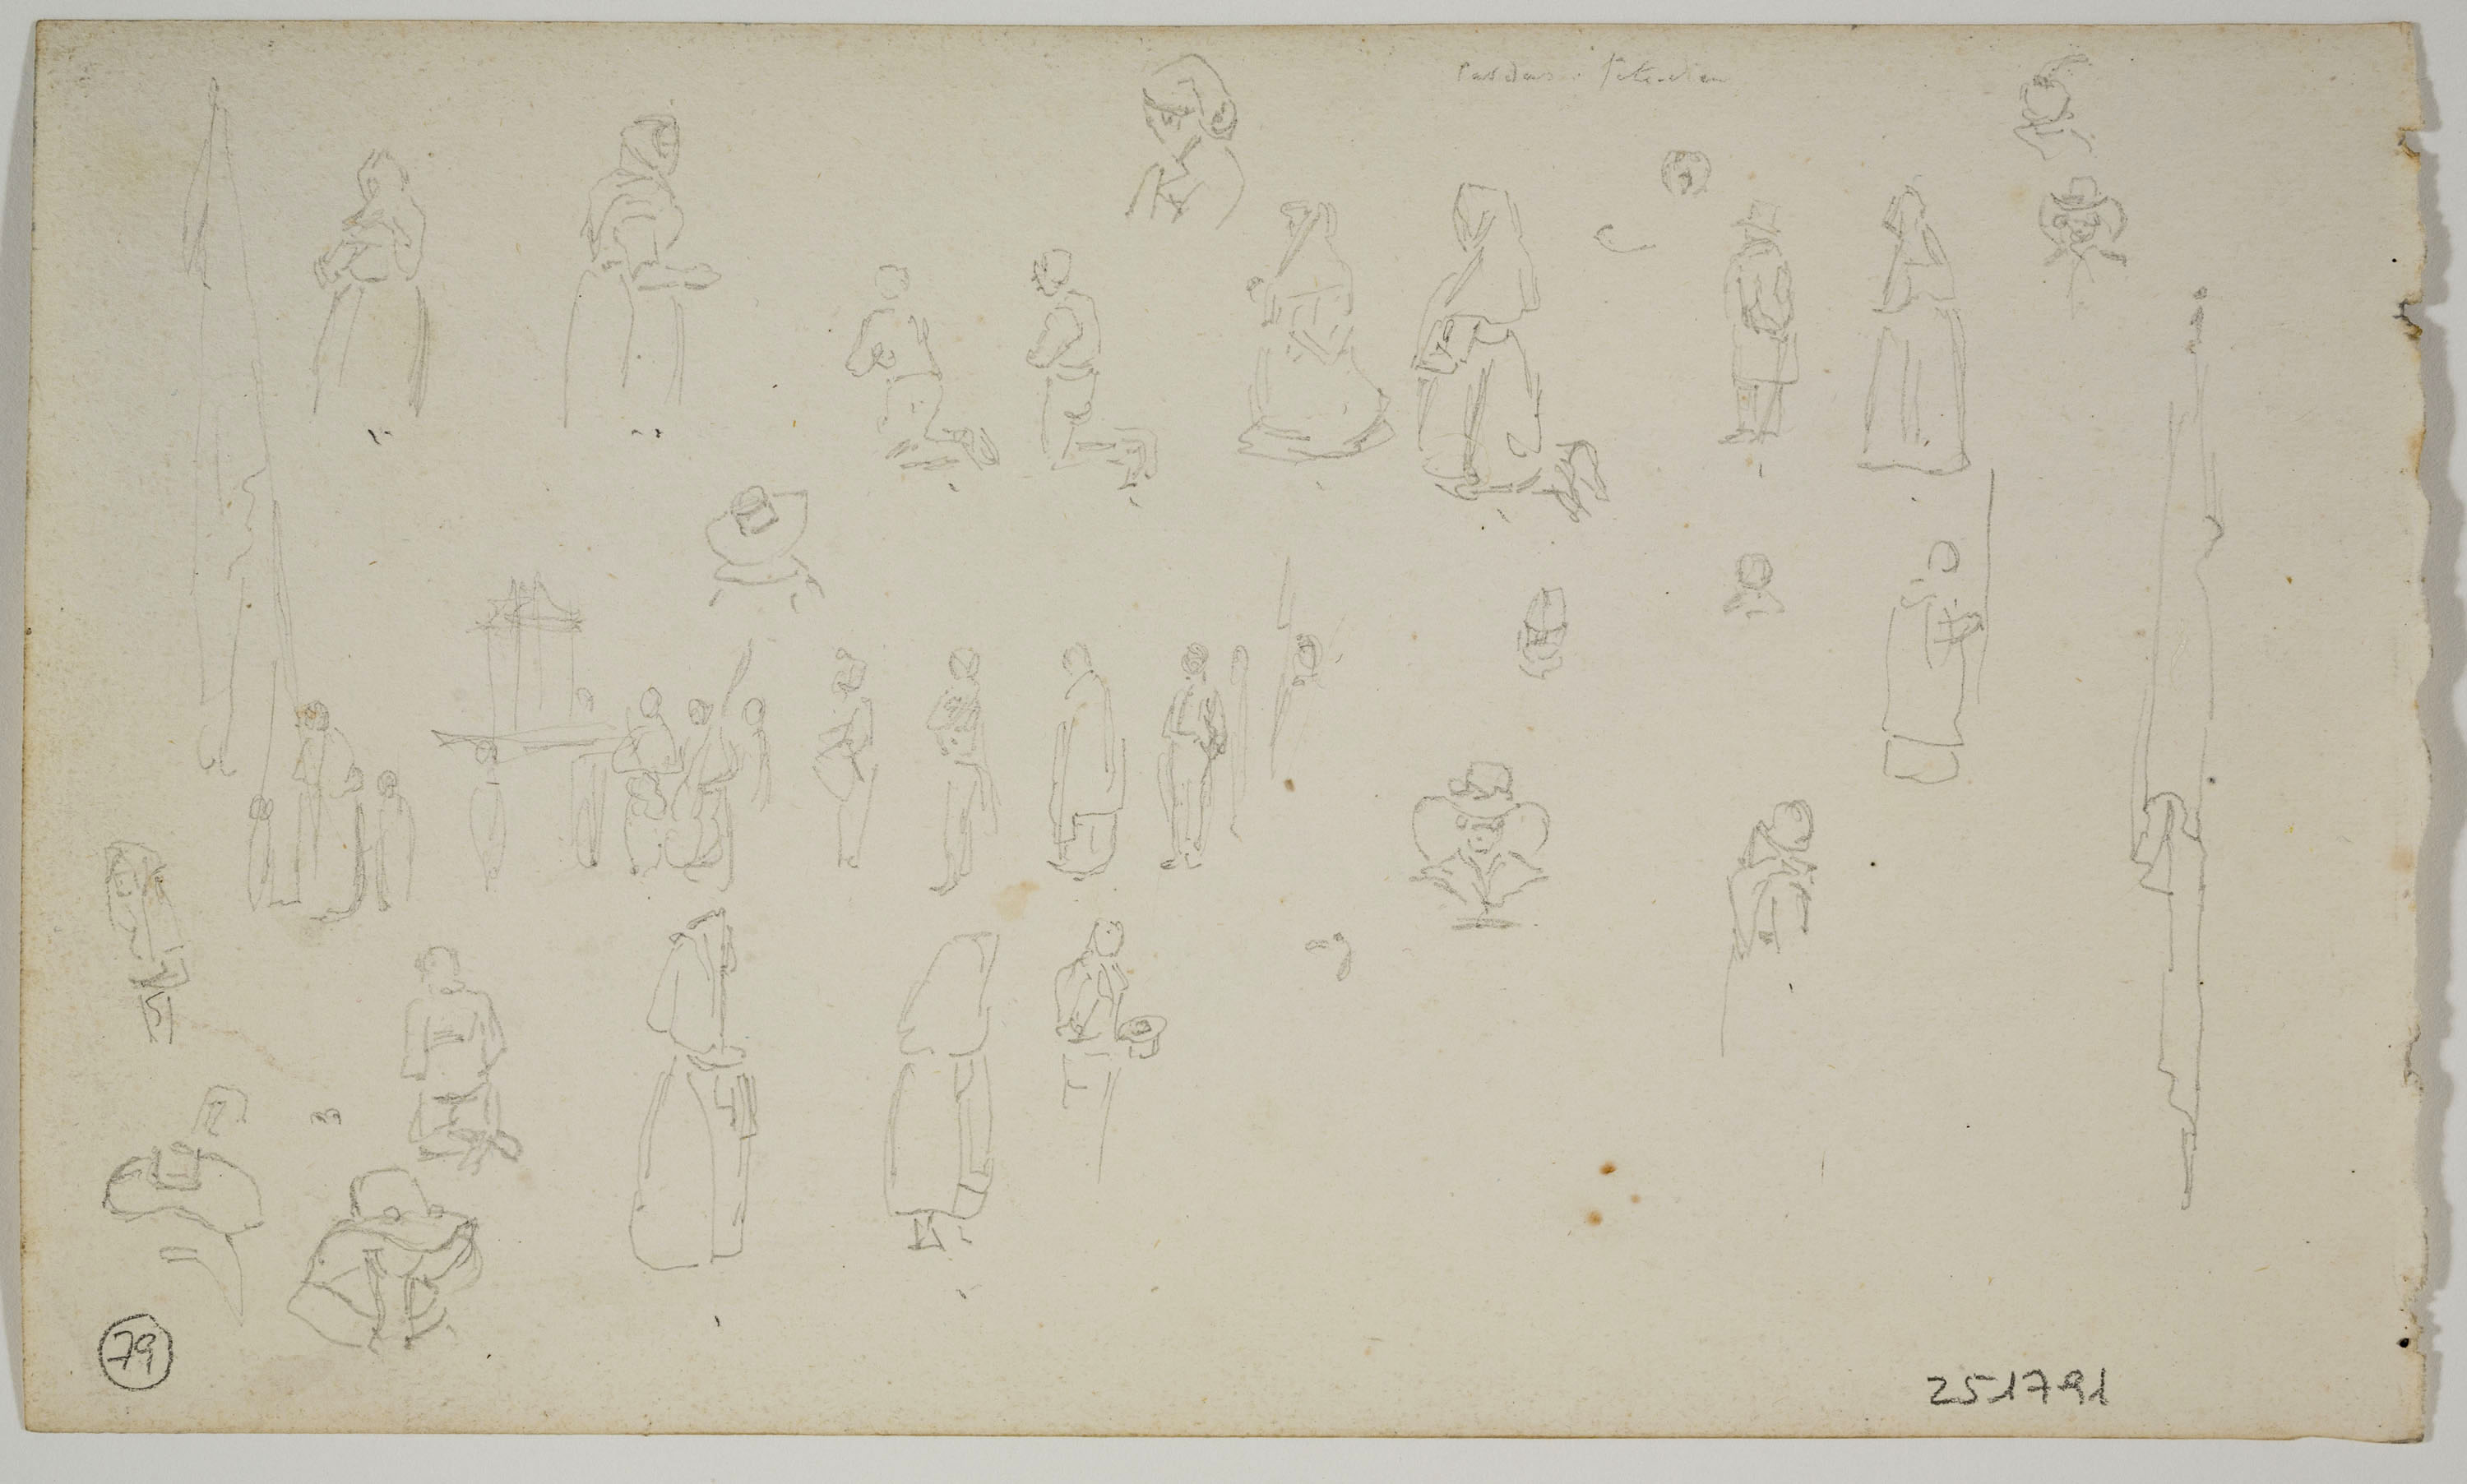 Adolphe Hedwige Alphonse Delamare - Figures Sketch - Circa 1827